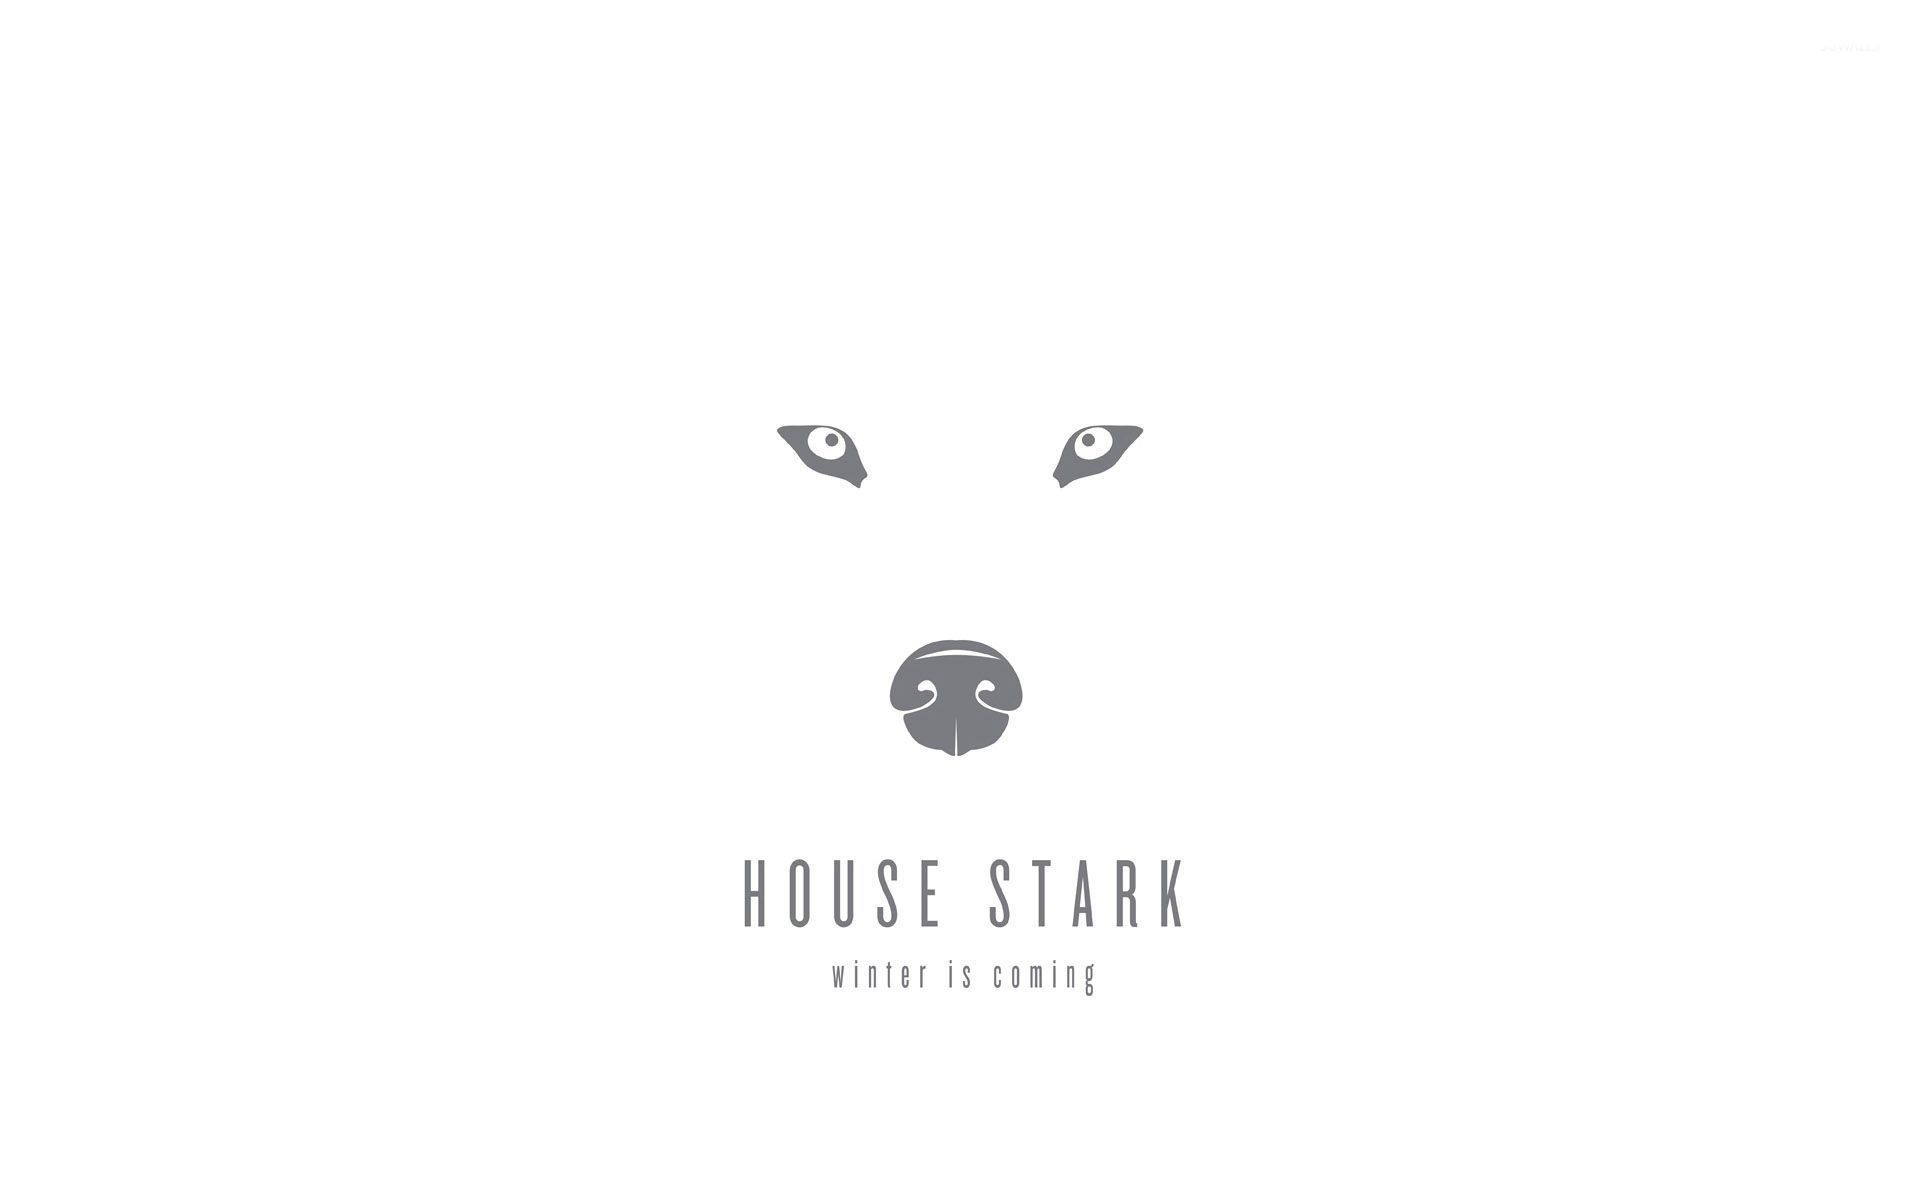 1920x1200 House Stark wallpaper